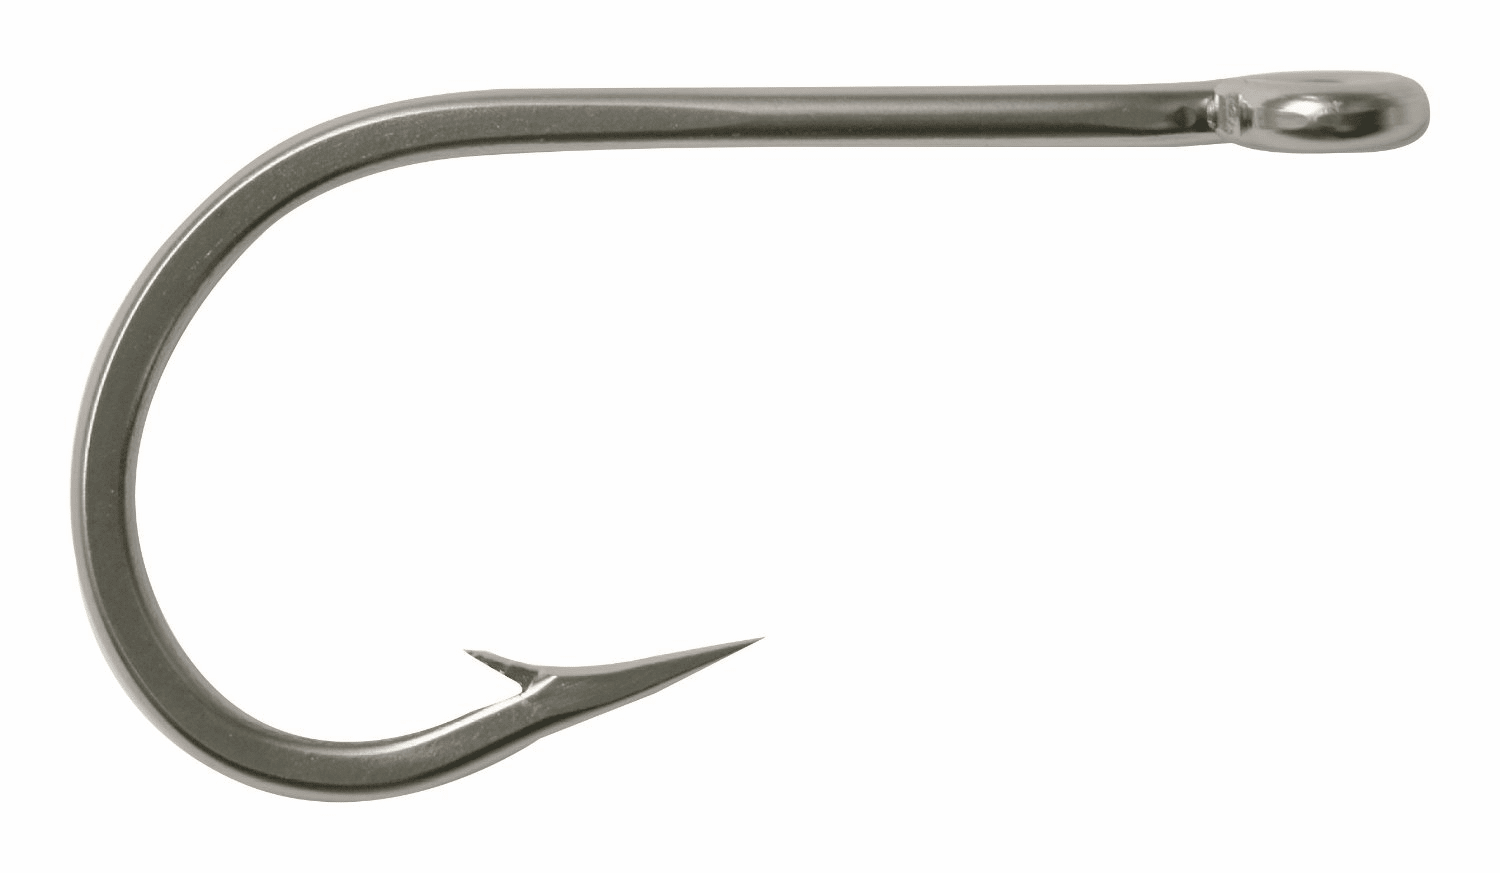 Stainless Steel Trolling Tuna Hooks- Model 7691S - 6/0 - 25 pcs